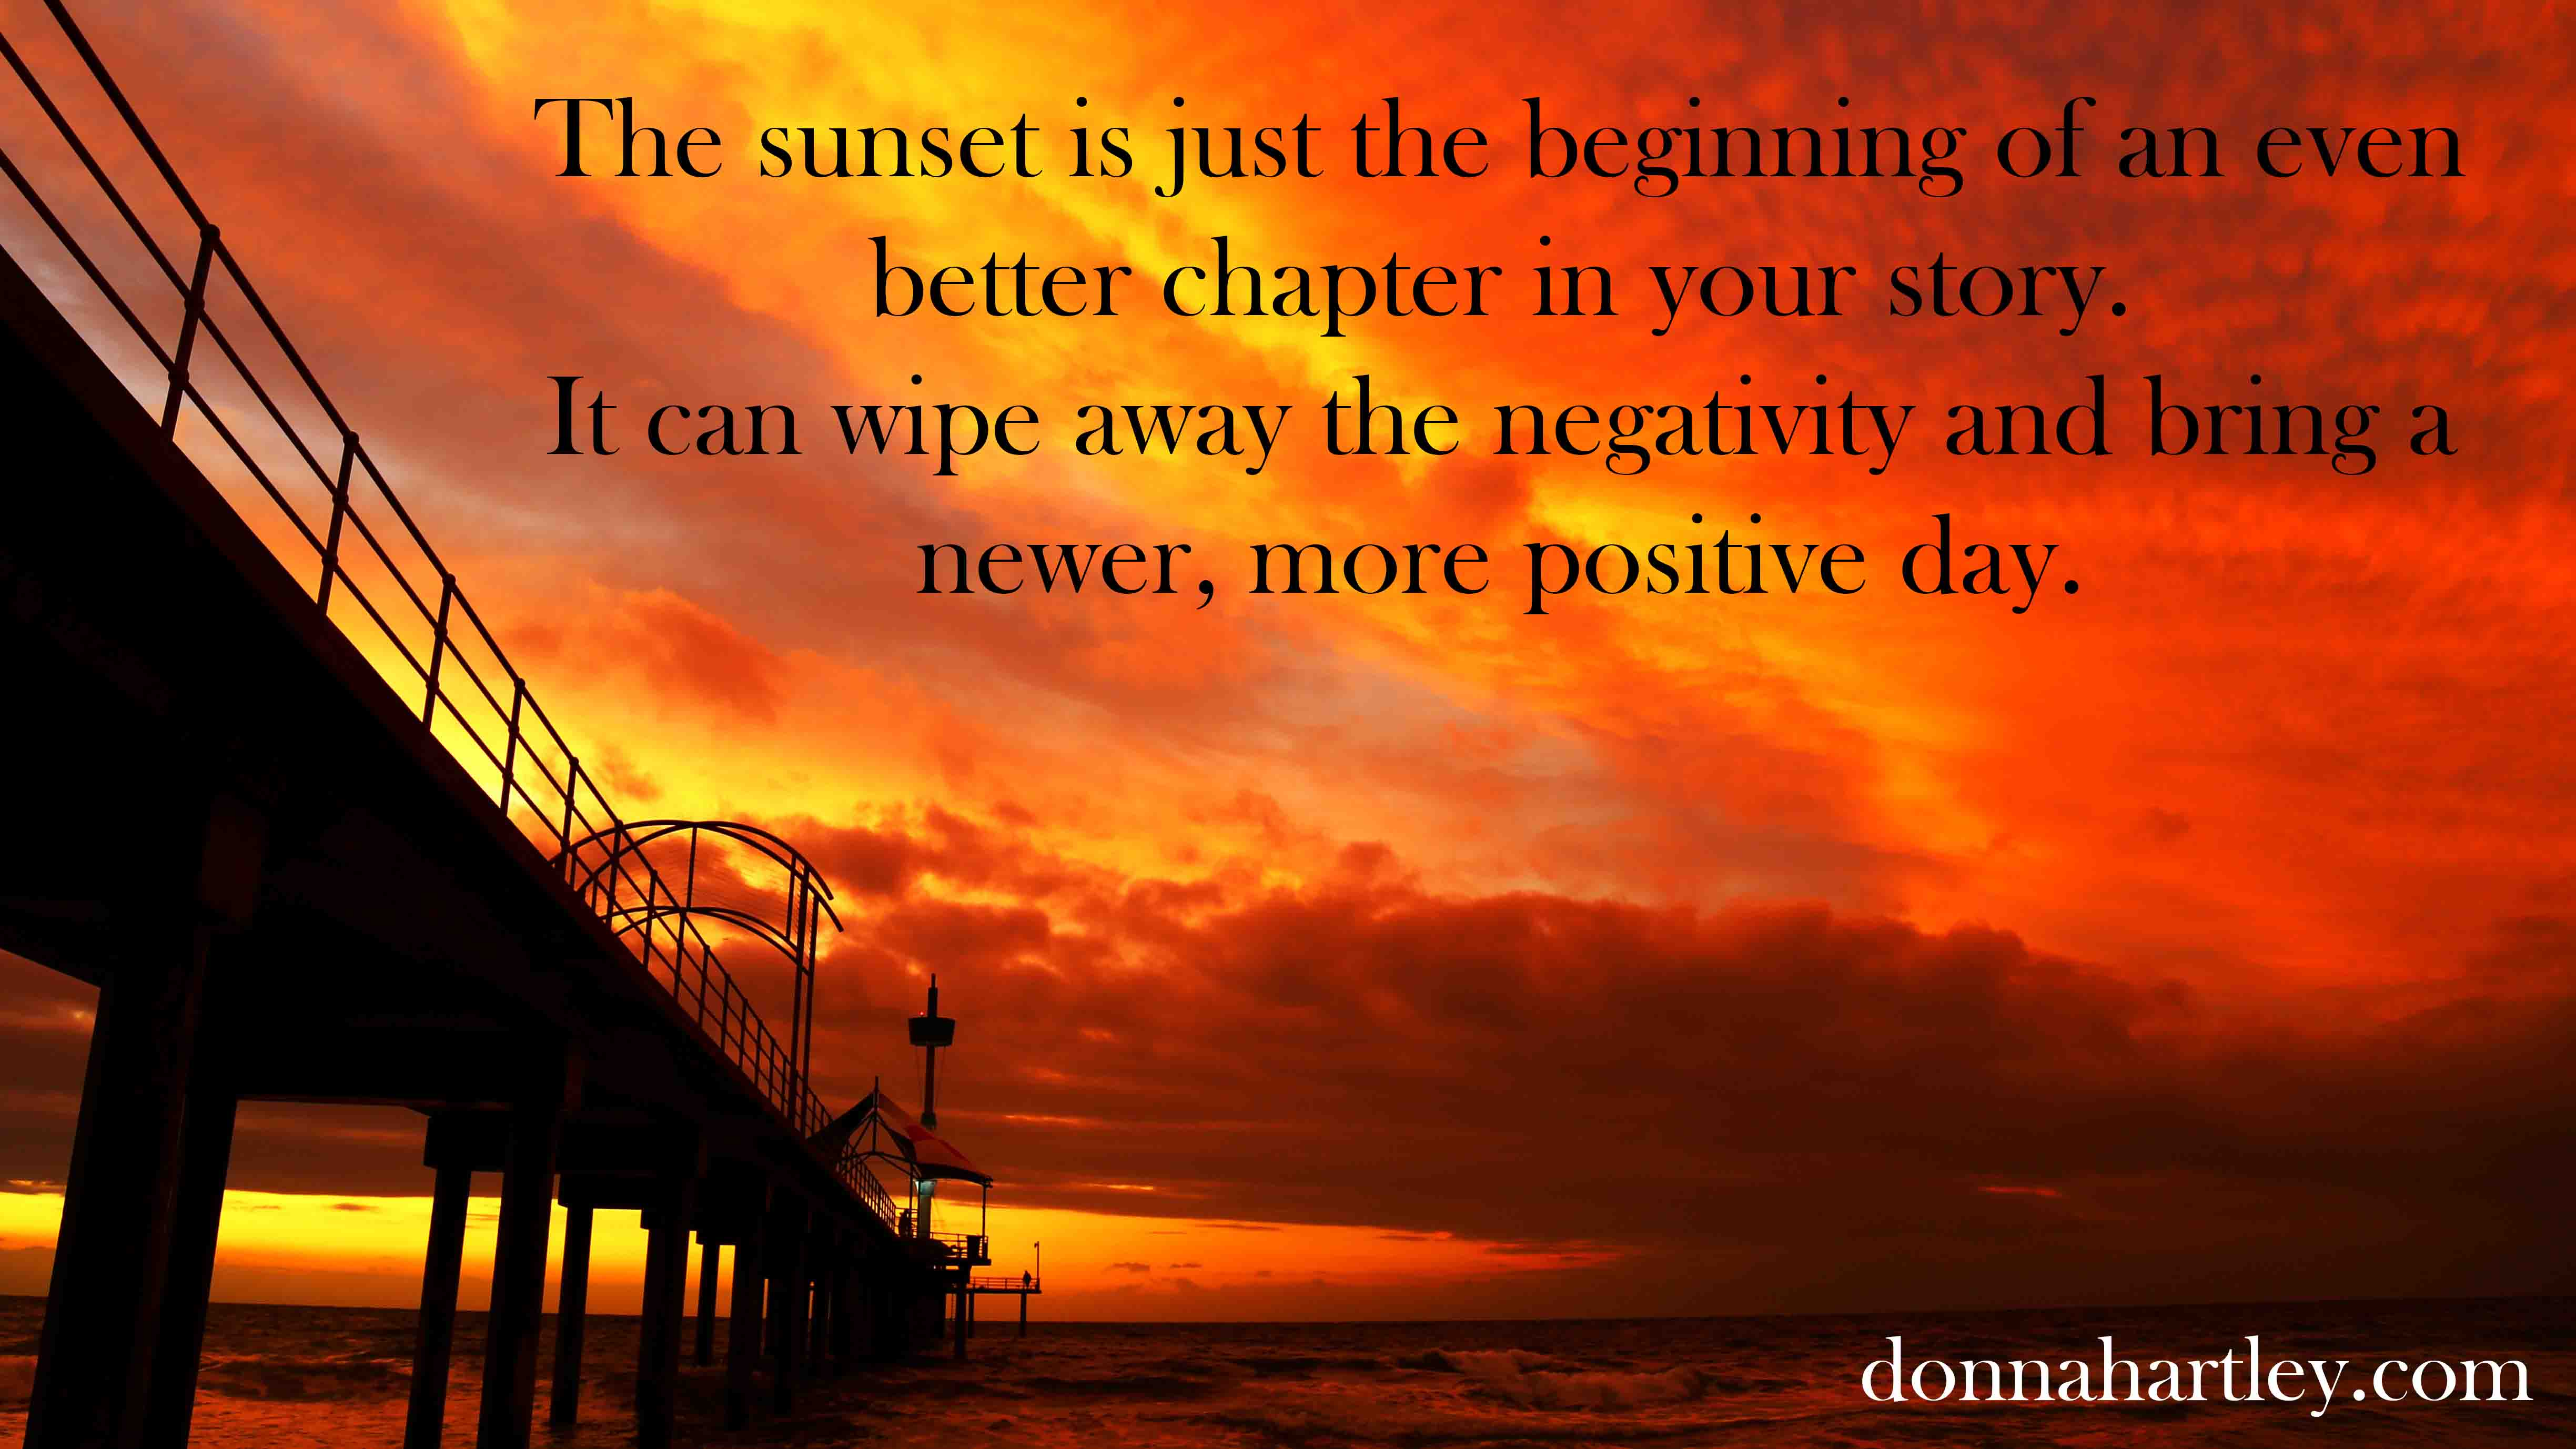 A Sunset Is The #beginning Of A Even Better Chapter In